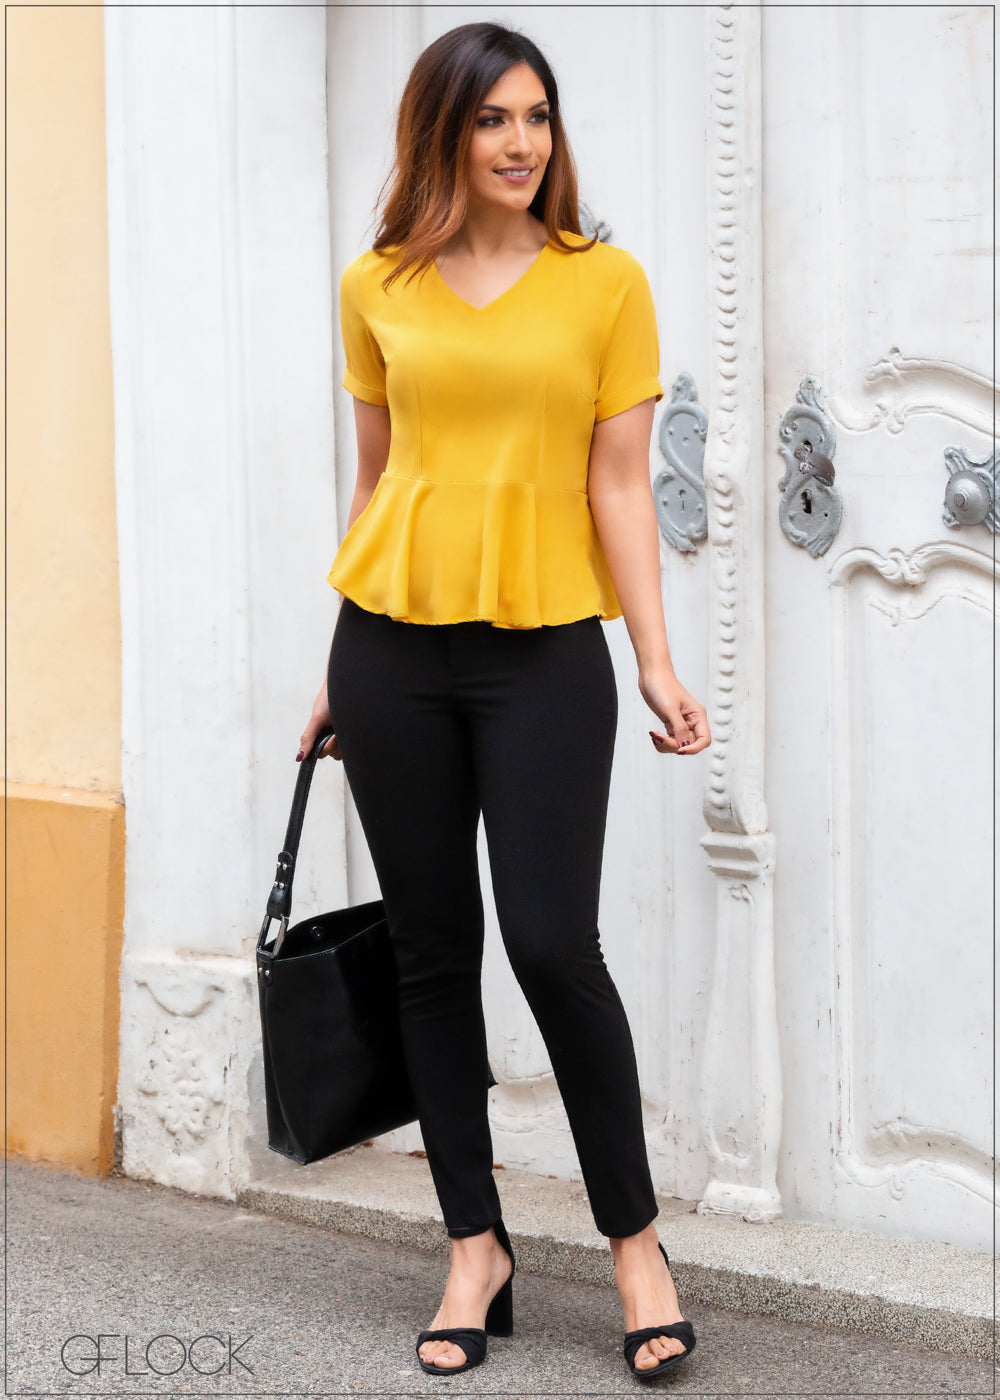 Short Sleeved Peplum Top - 357